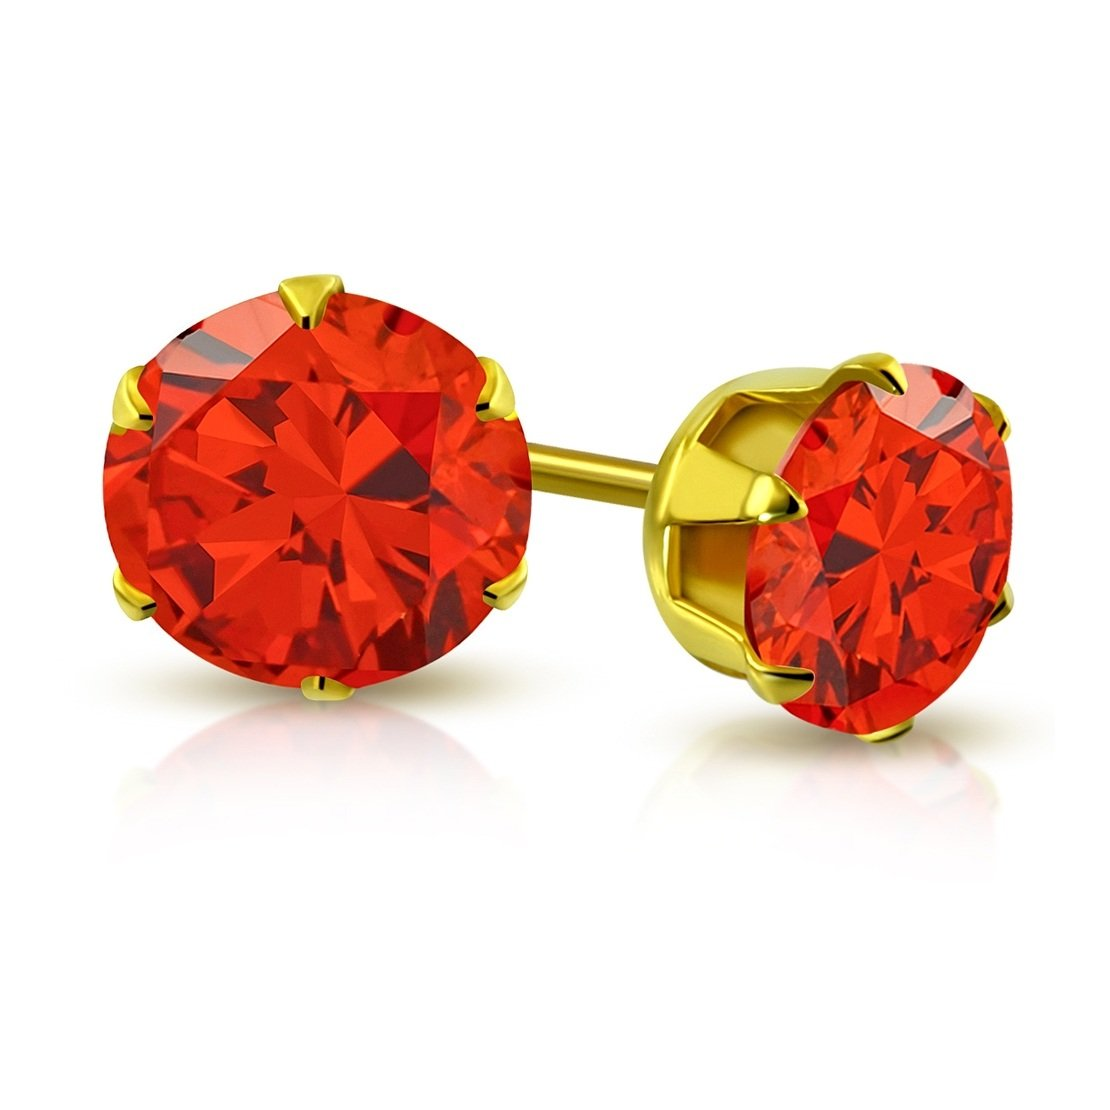 pair Stainless Steel Gold Color Plated Prong-Set Round Circle Stud Earrings with Orange Hyacinth CZ